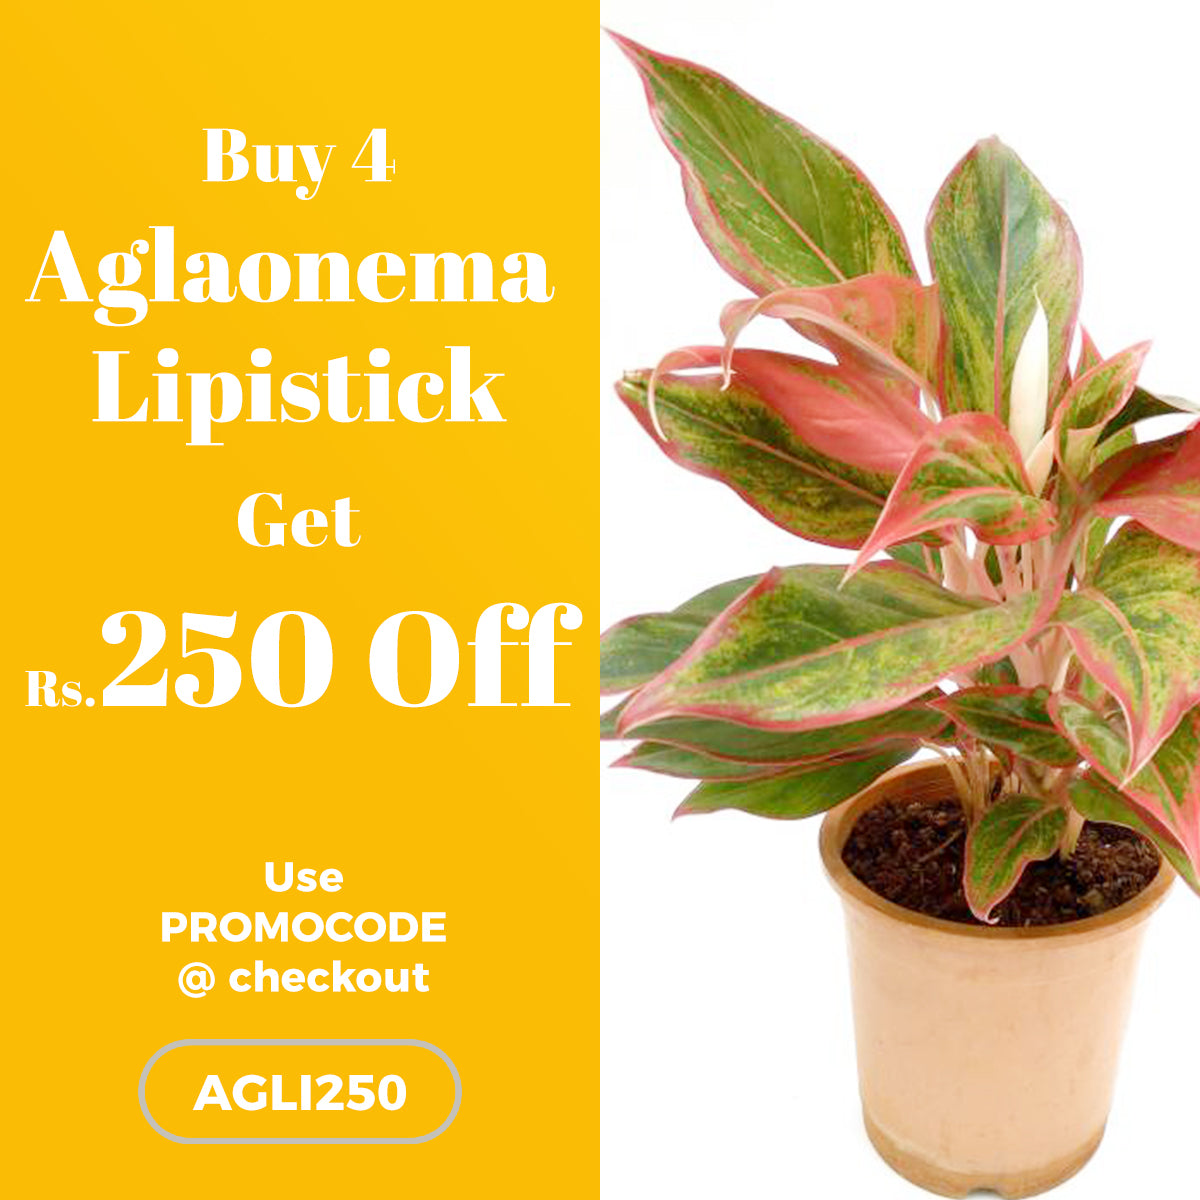 Buy 4 Aglaonema Lipistick Plant and get Rs.250 OFF